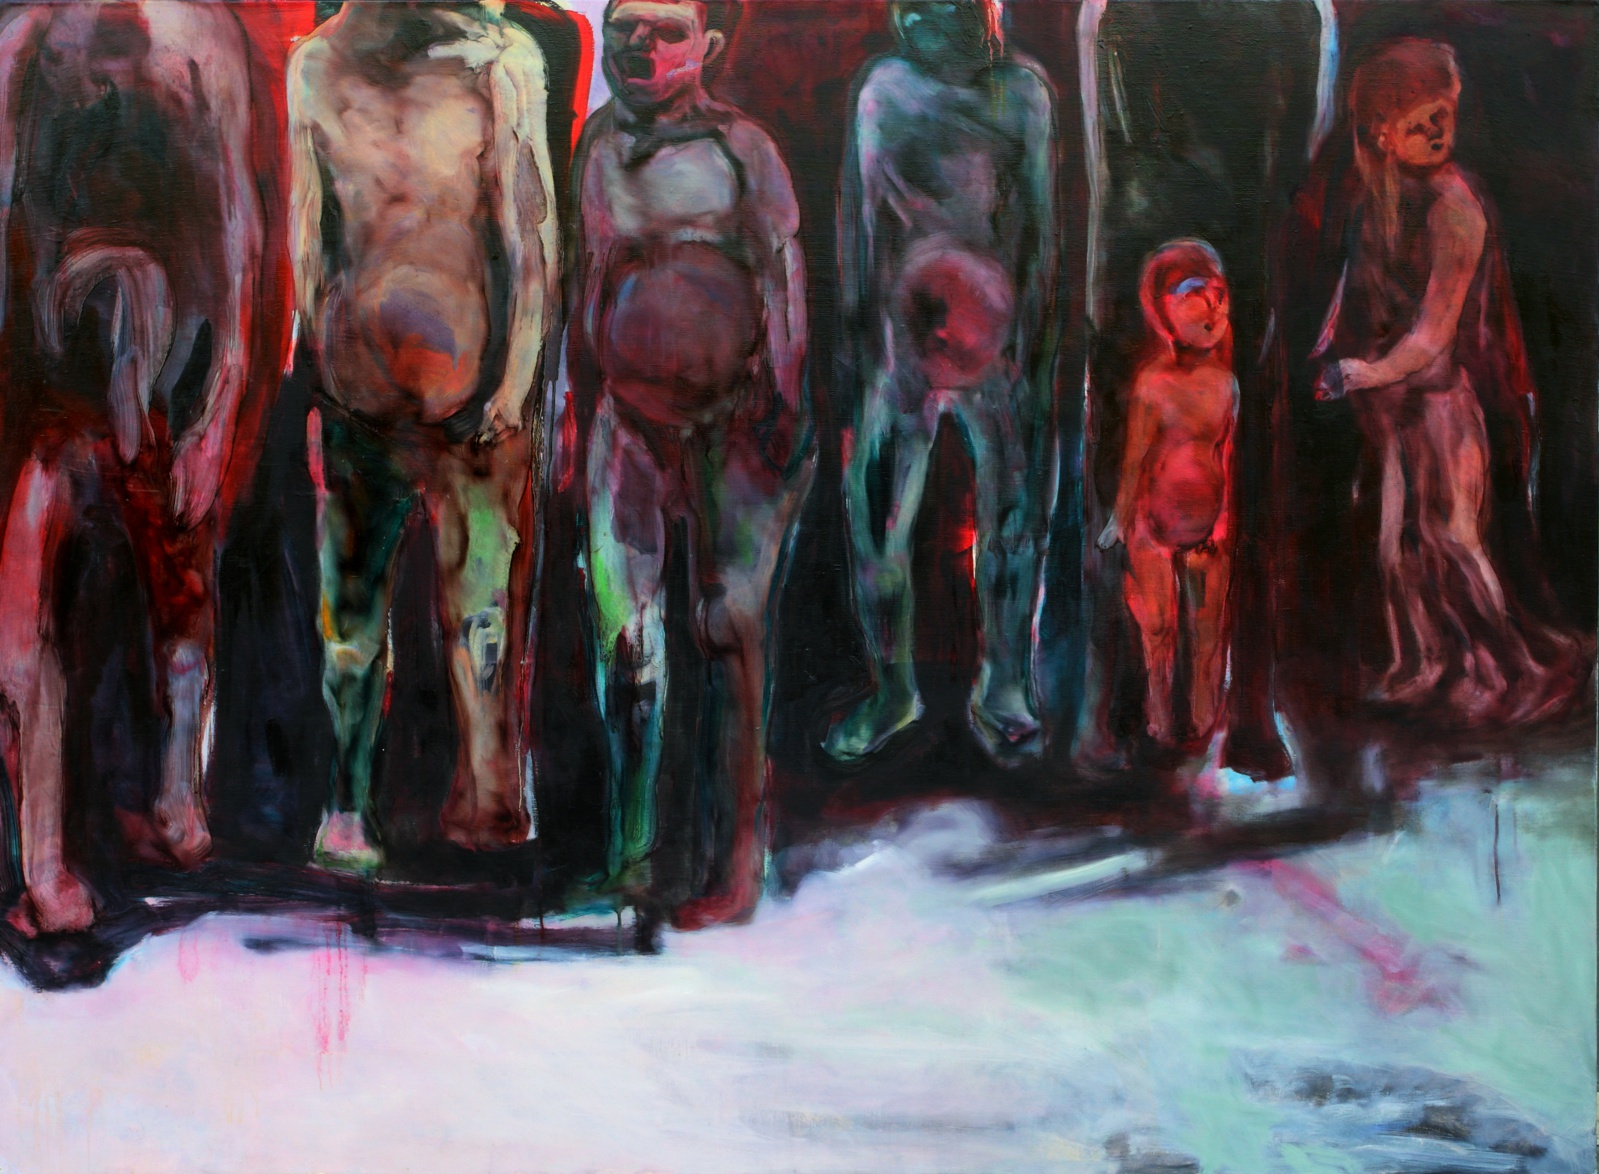 Chang-Ling, from  The Illusion Society    Series ,2011,  oil on canvas,  145 x 194 cm., Taiwan Contemporary Art Archives.